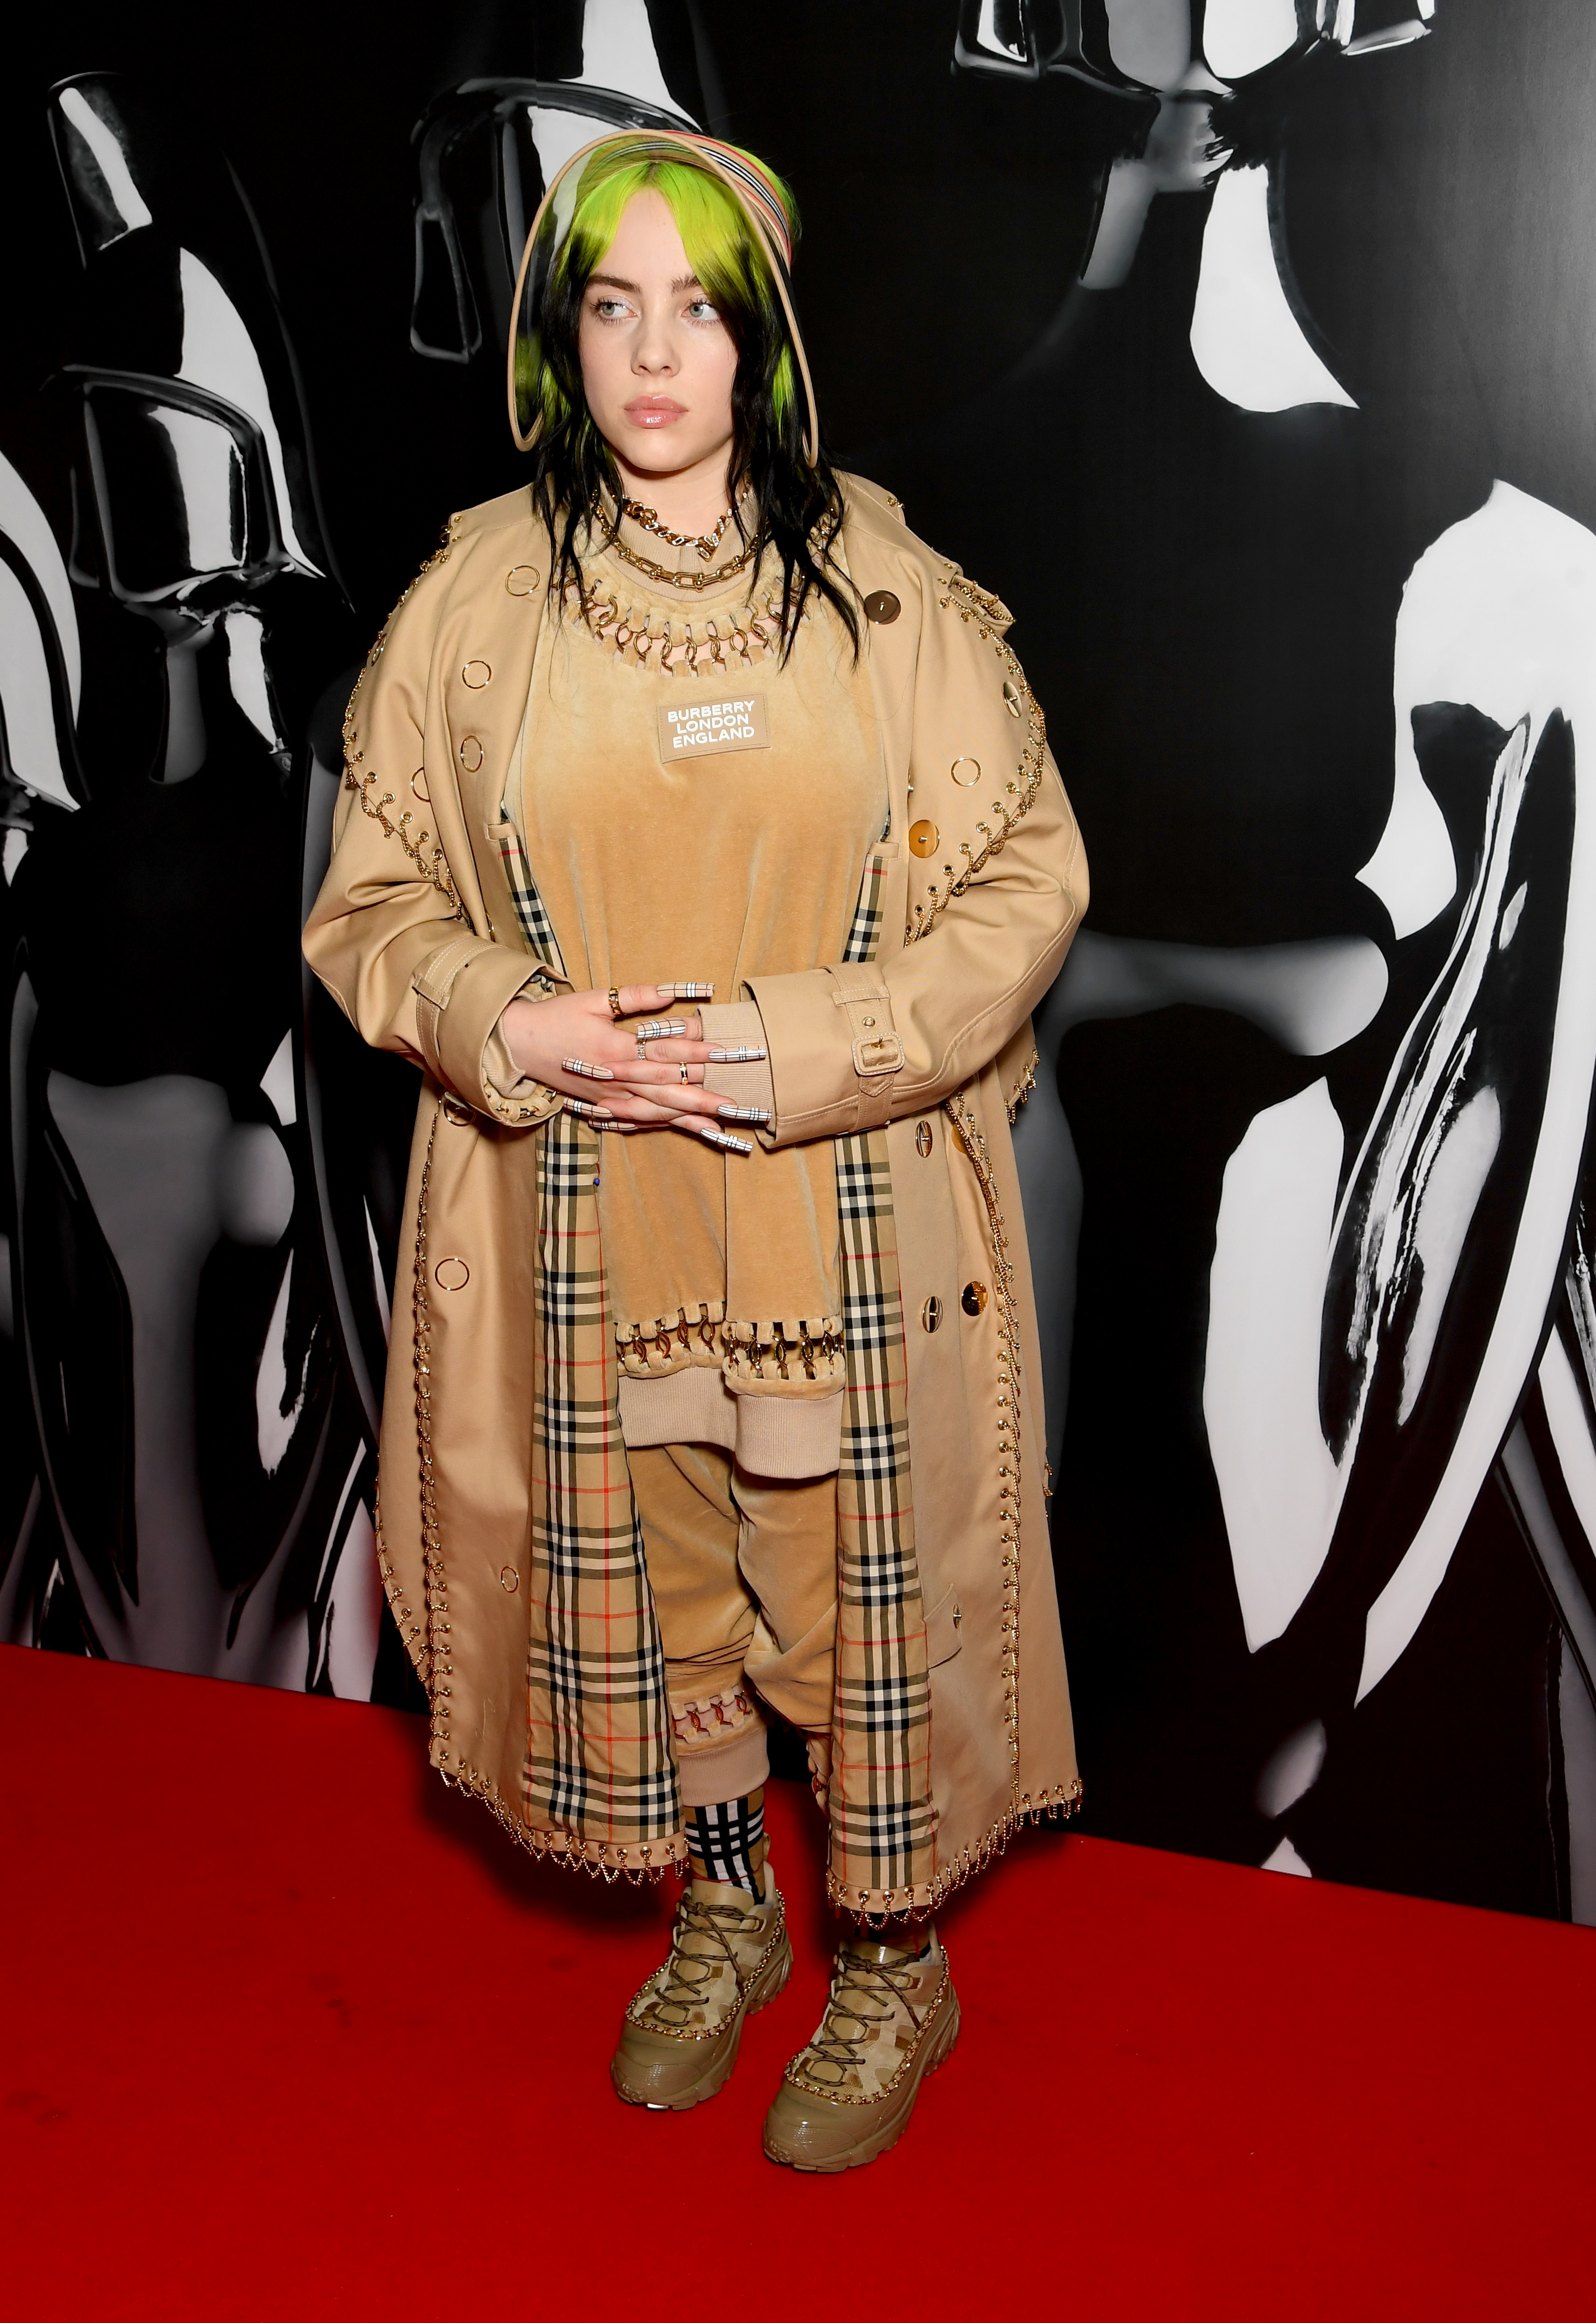 Billie Eilish attends The BRIT Awards 2020 at The O2 Arena on February 18, 2020 in London, England. (Photo by Dave J Hogan/Getty Images)